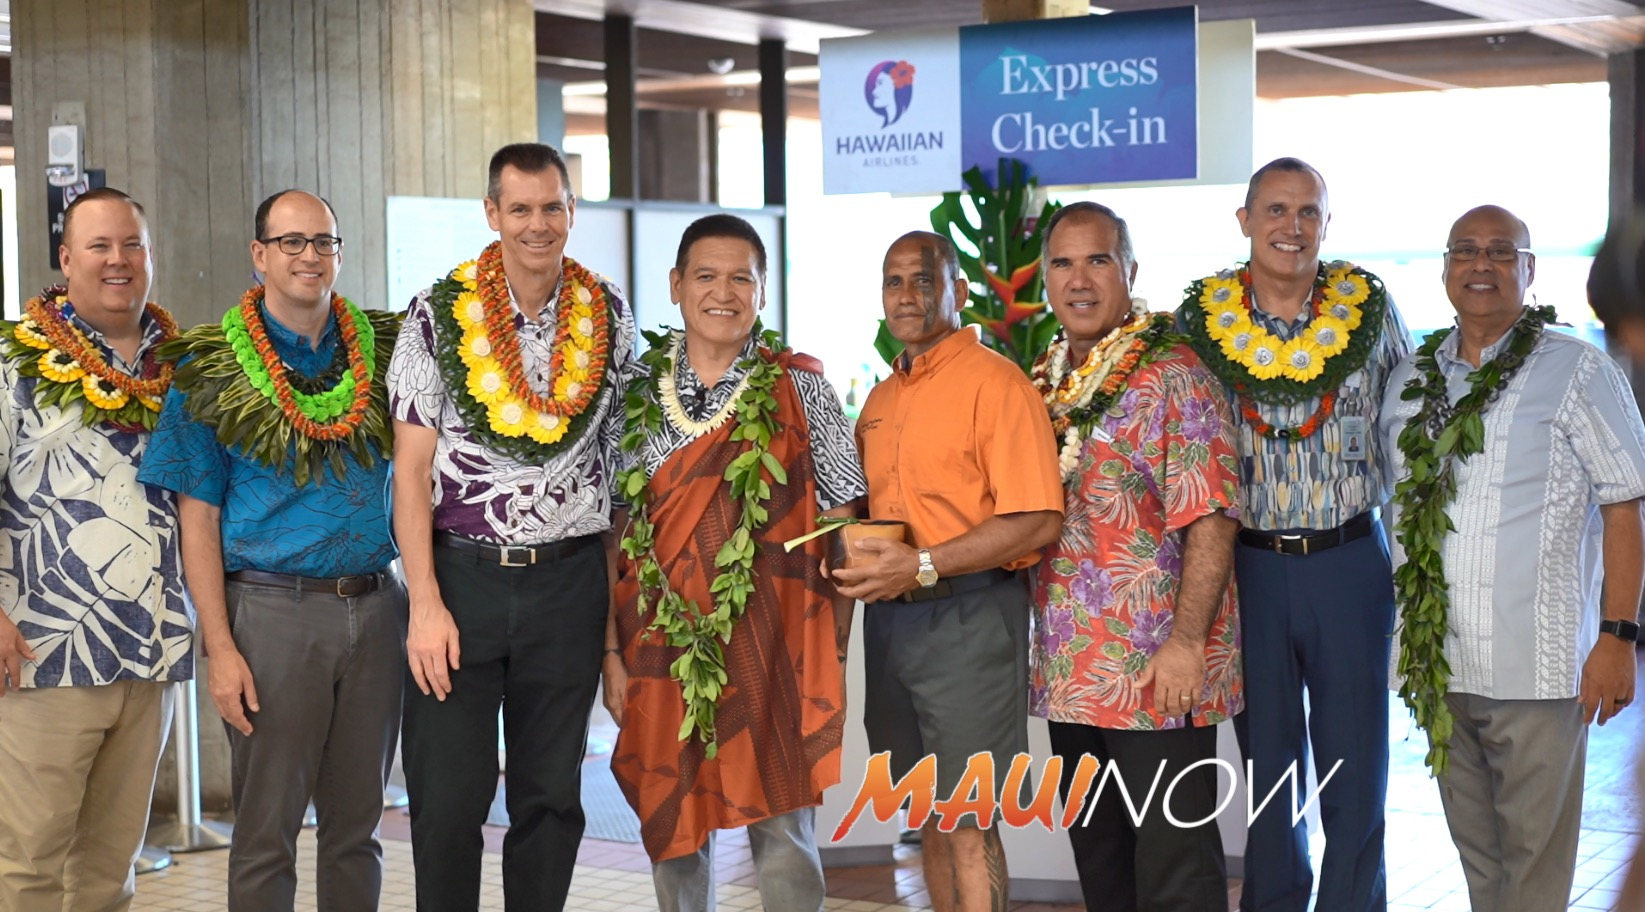 Hawaiian Airlines Reveals Newly Renovated Lobby at Kahului Airport